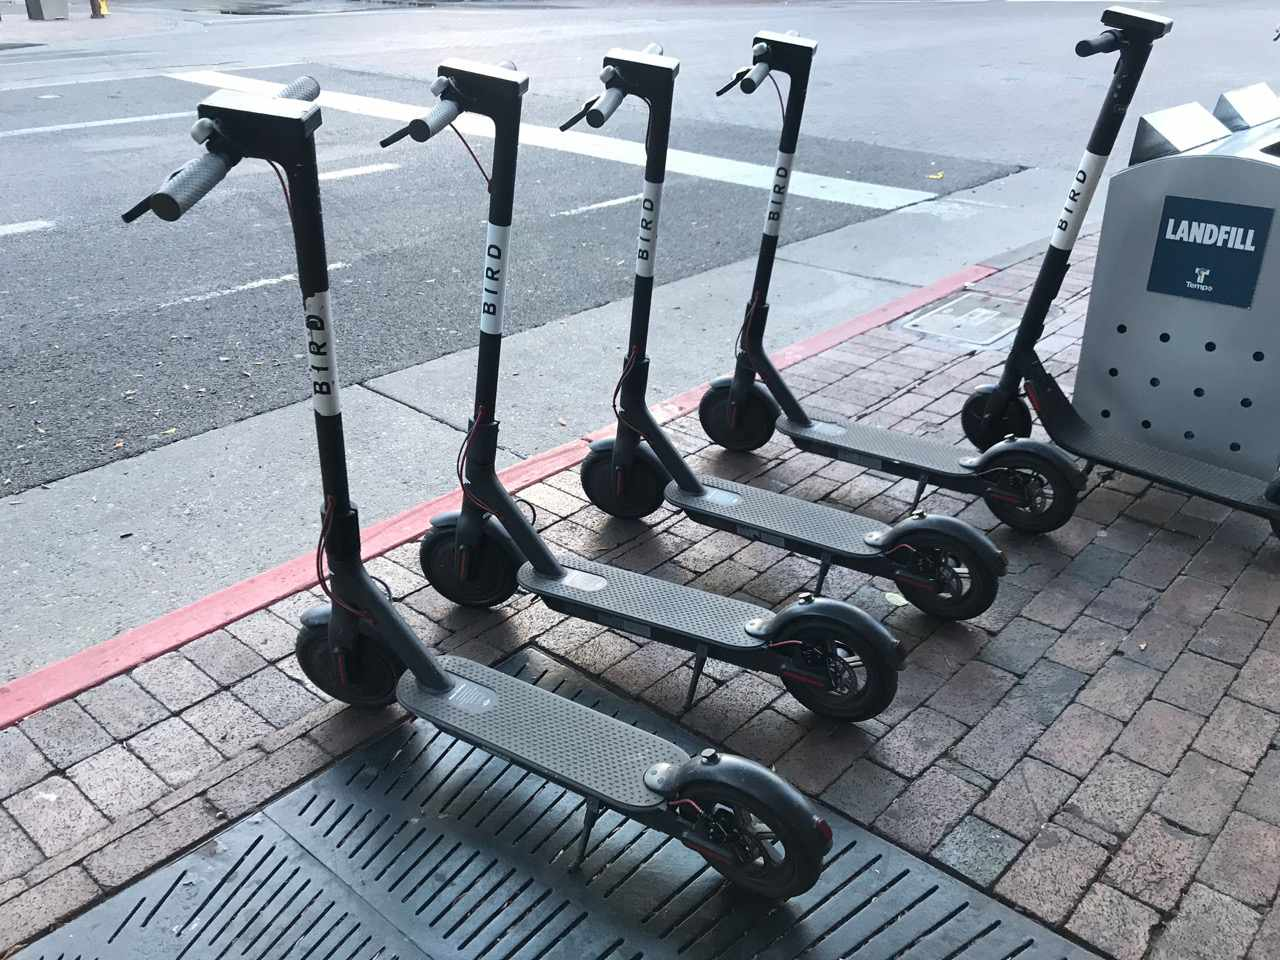 parked scooters in tempe